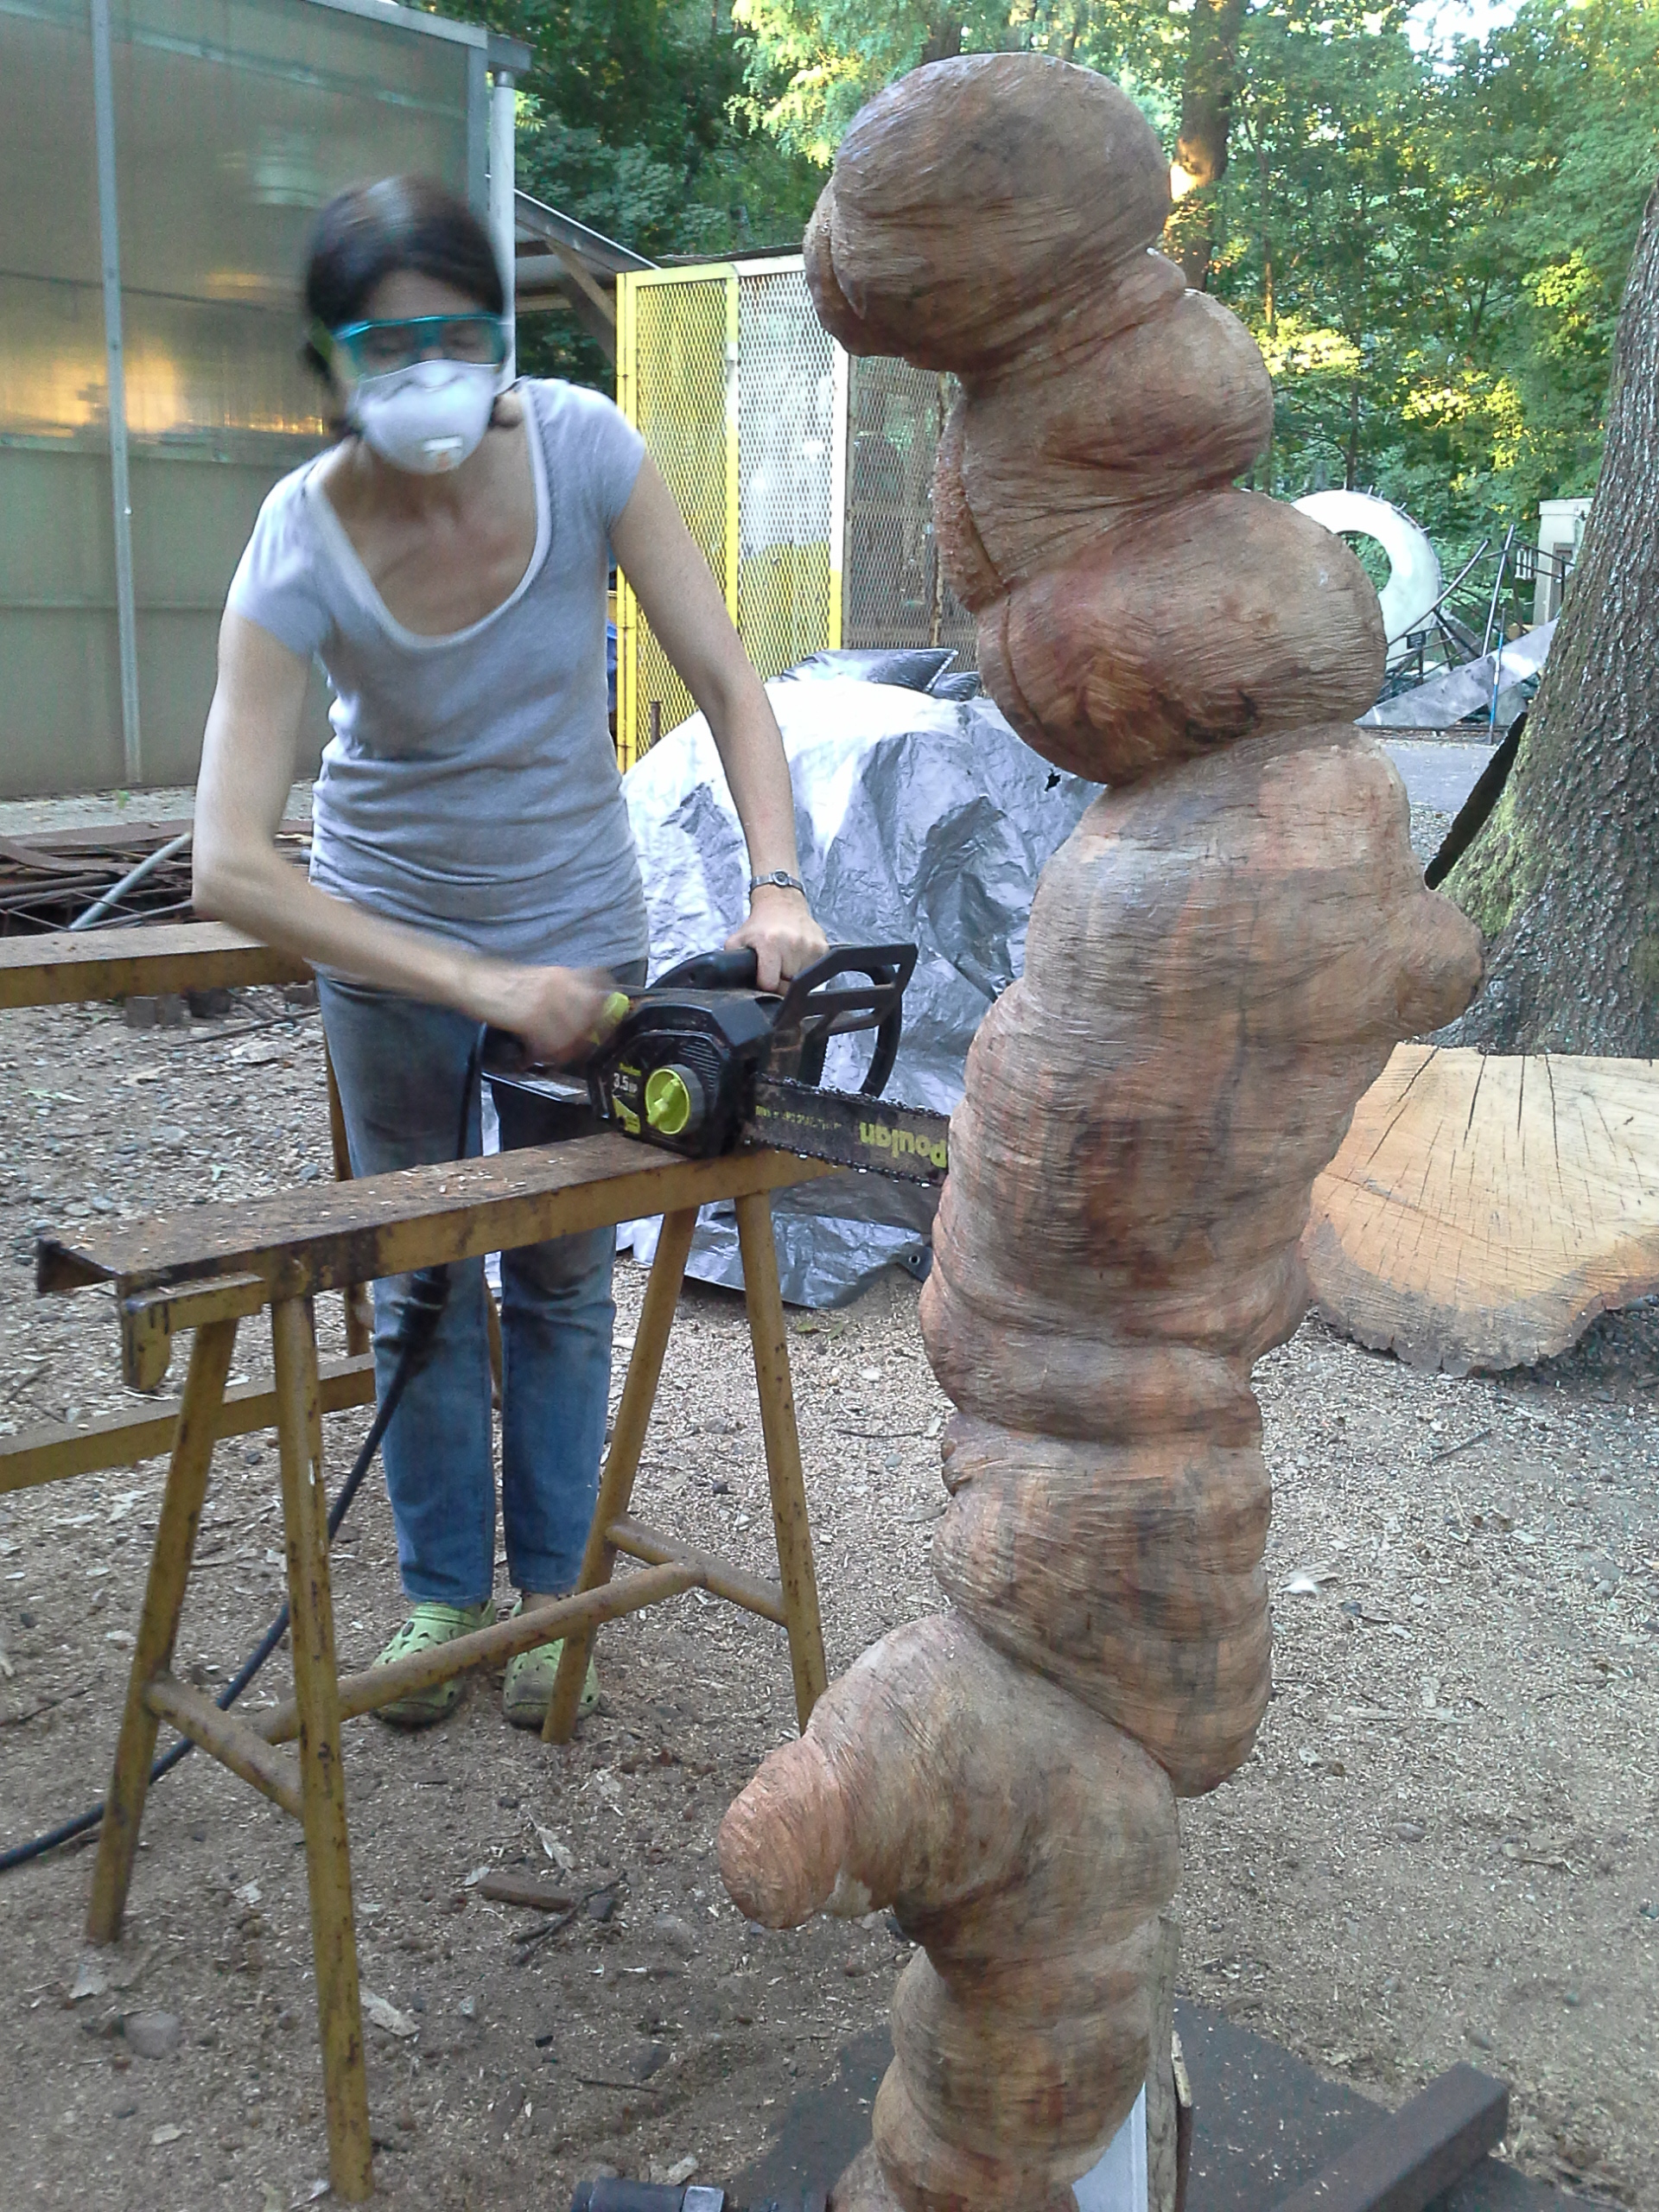 Chainsawing.